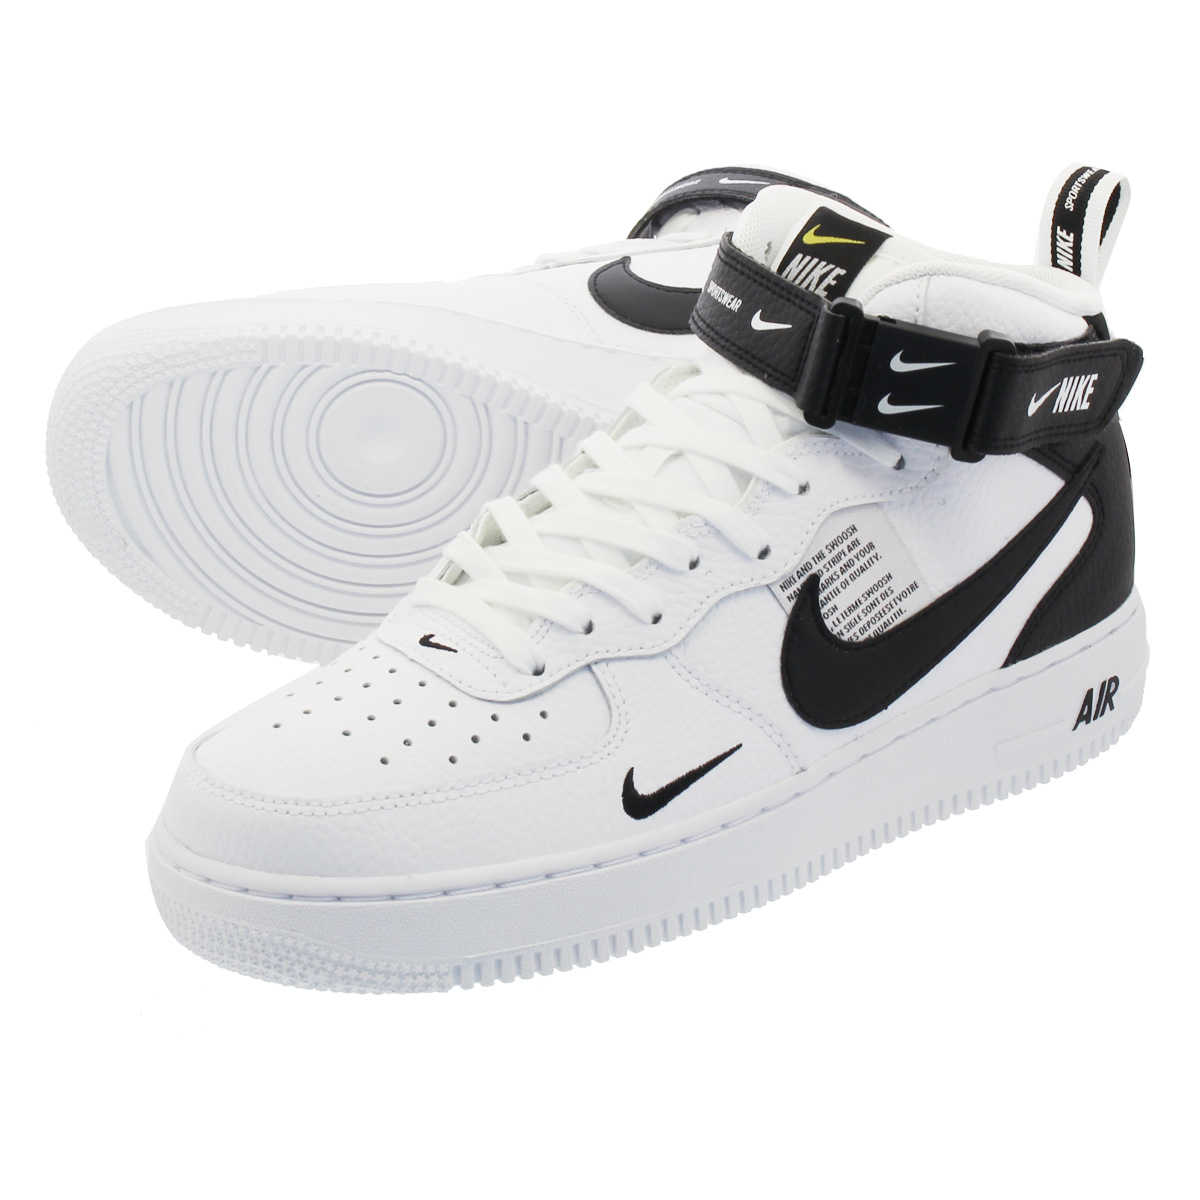 NIKE AIR FORCE 1 MID '07 LV8 UTILITY Nike air force 1 mid '07 LV8 utility  WHITE/BLACK 804,609-103